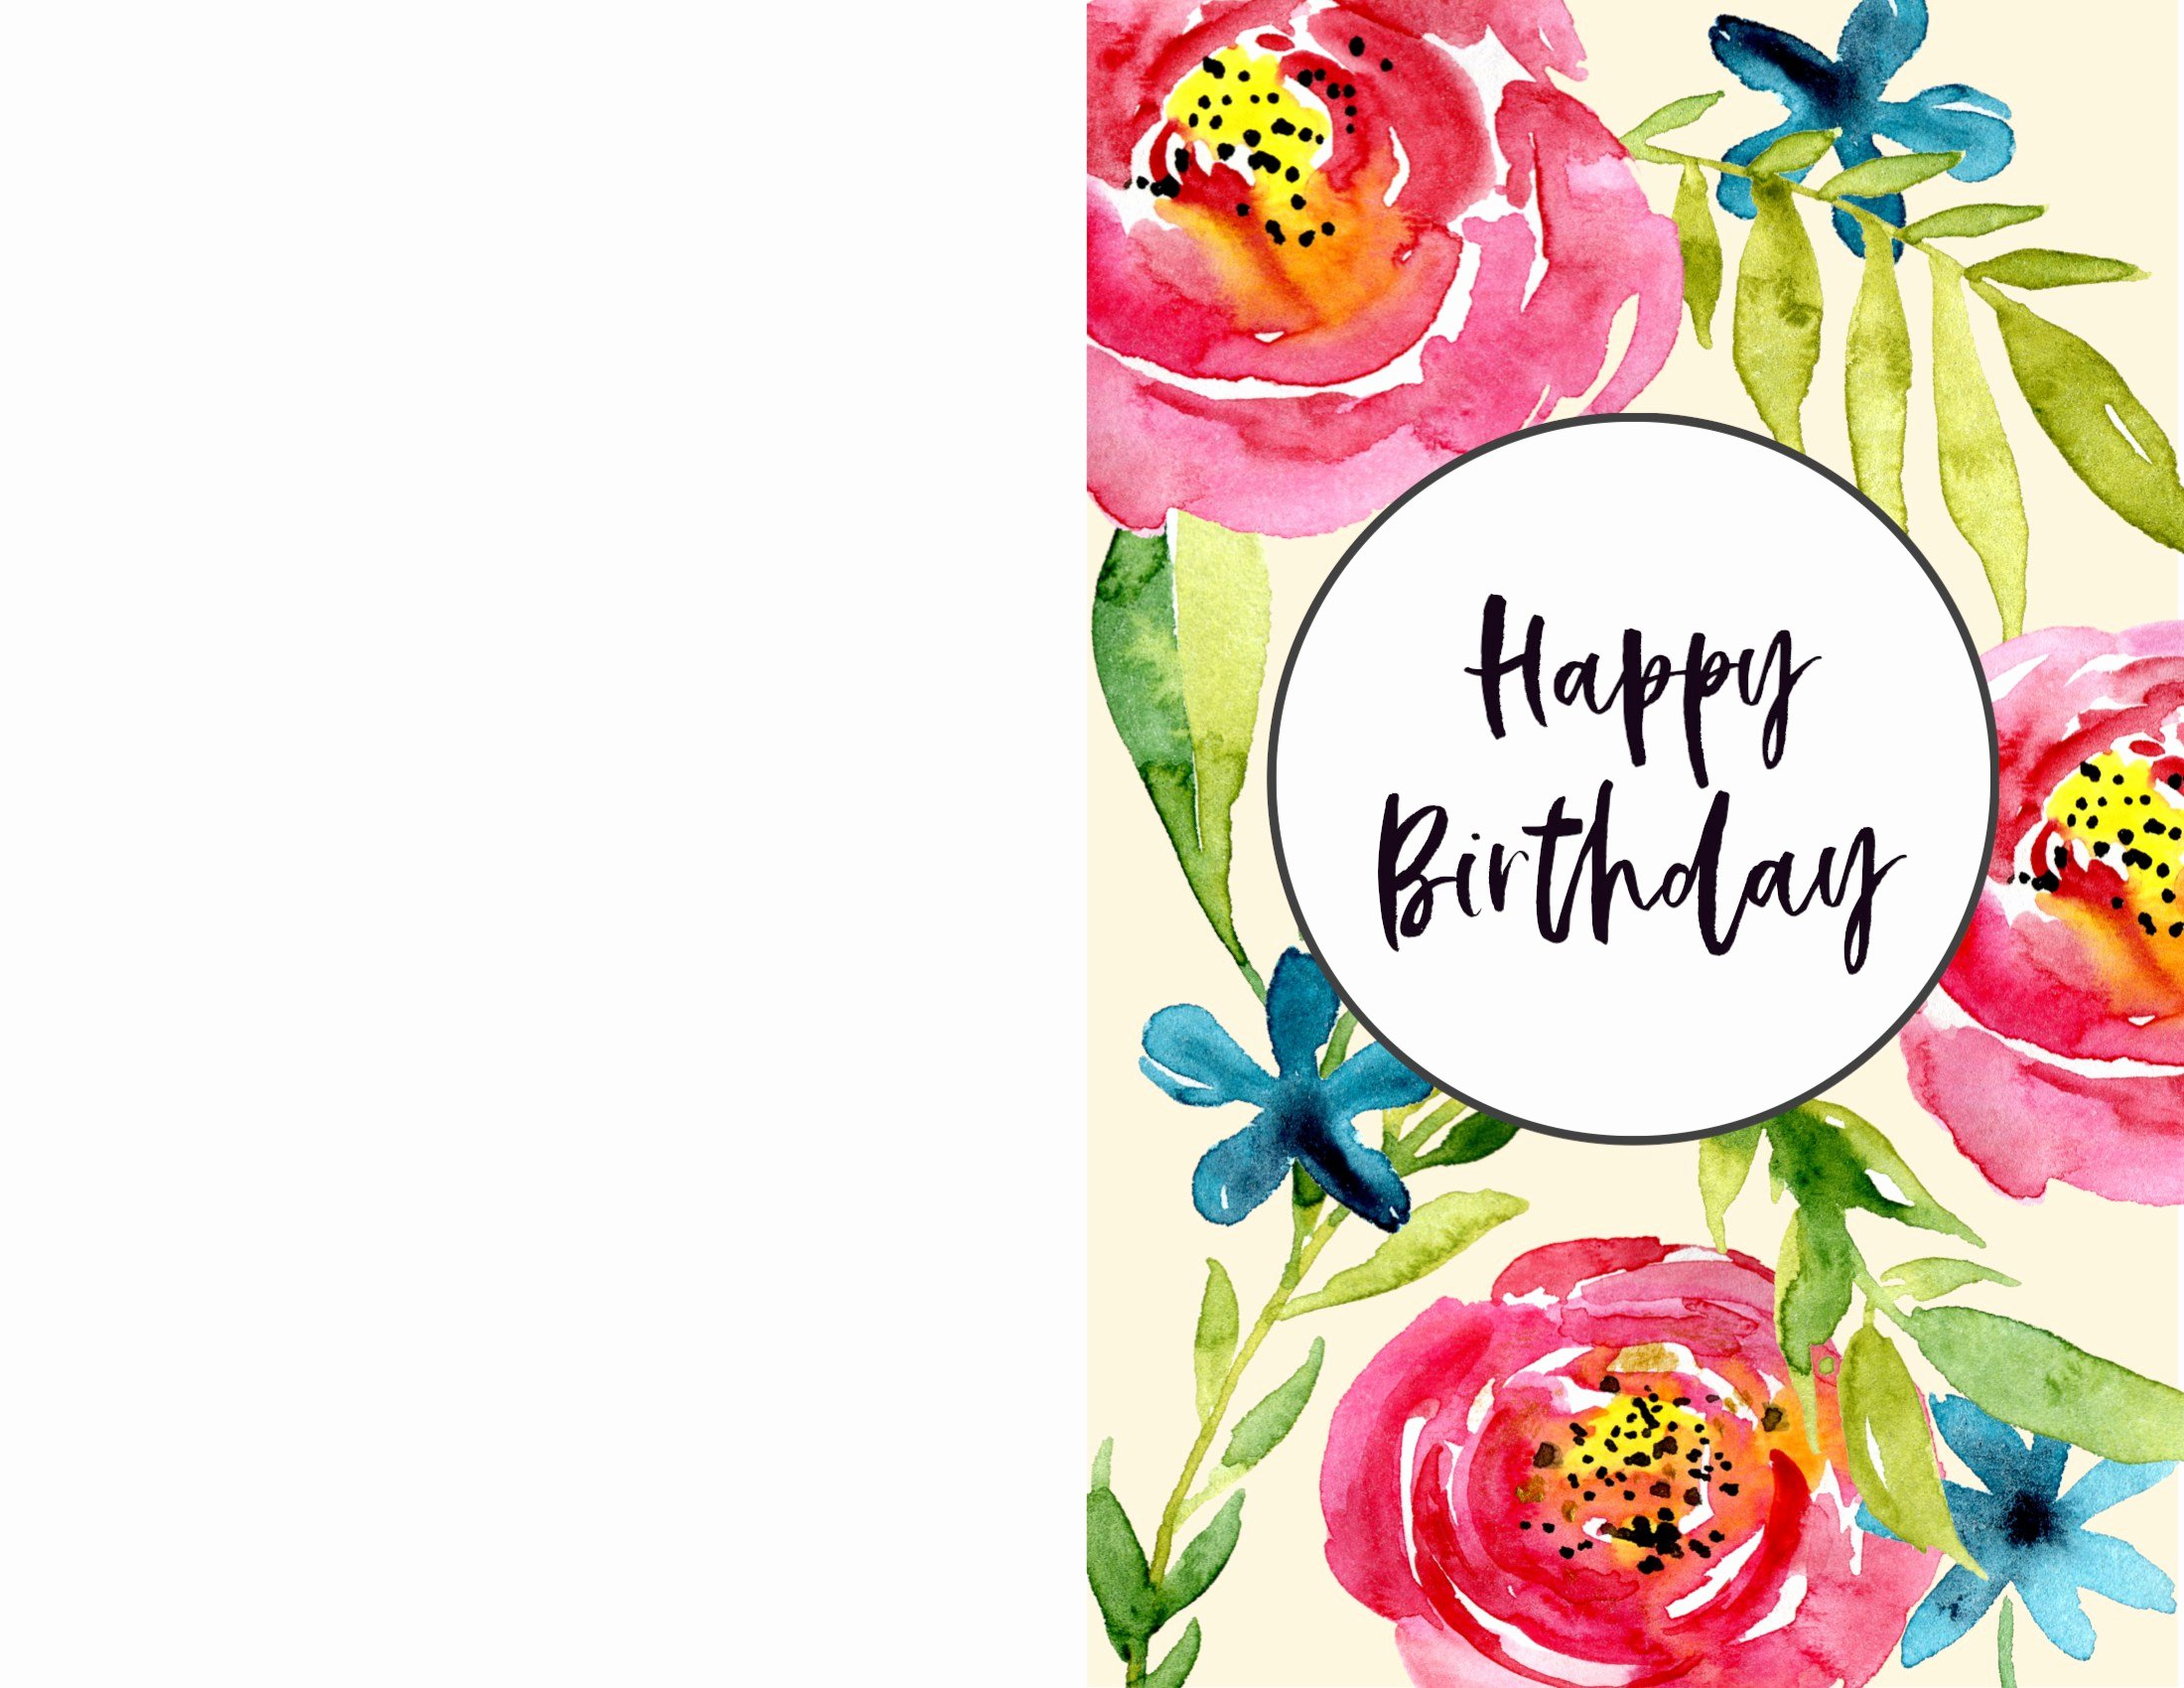 Free Birthday Card Templates Unique Free Printable Birthday Cards Paper Trail Design